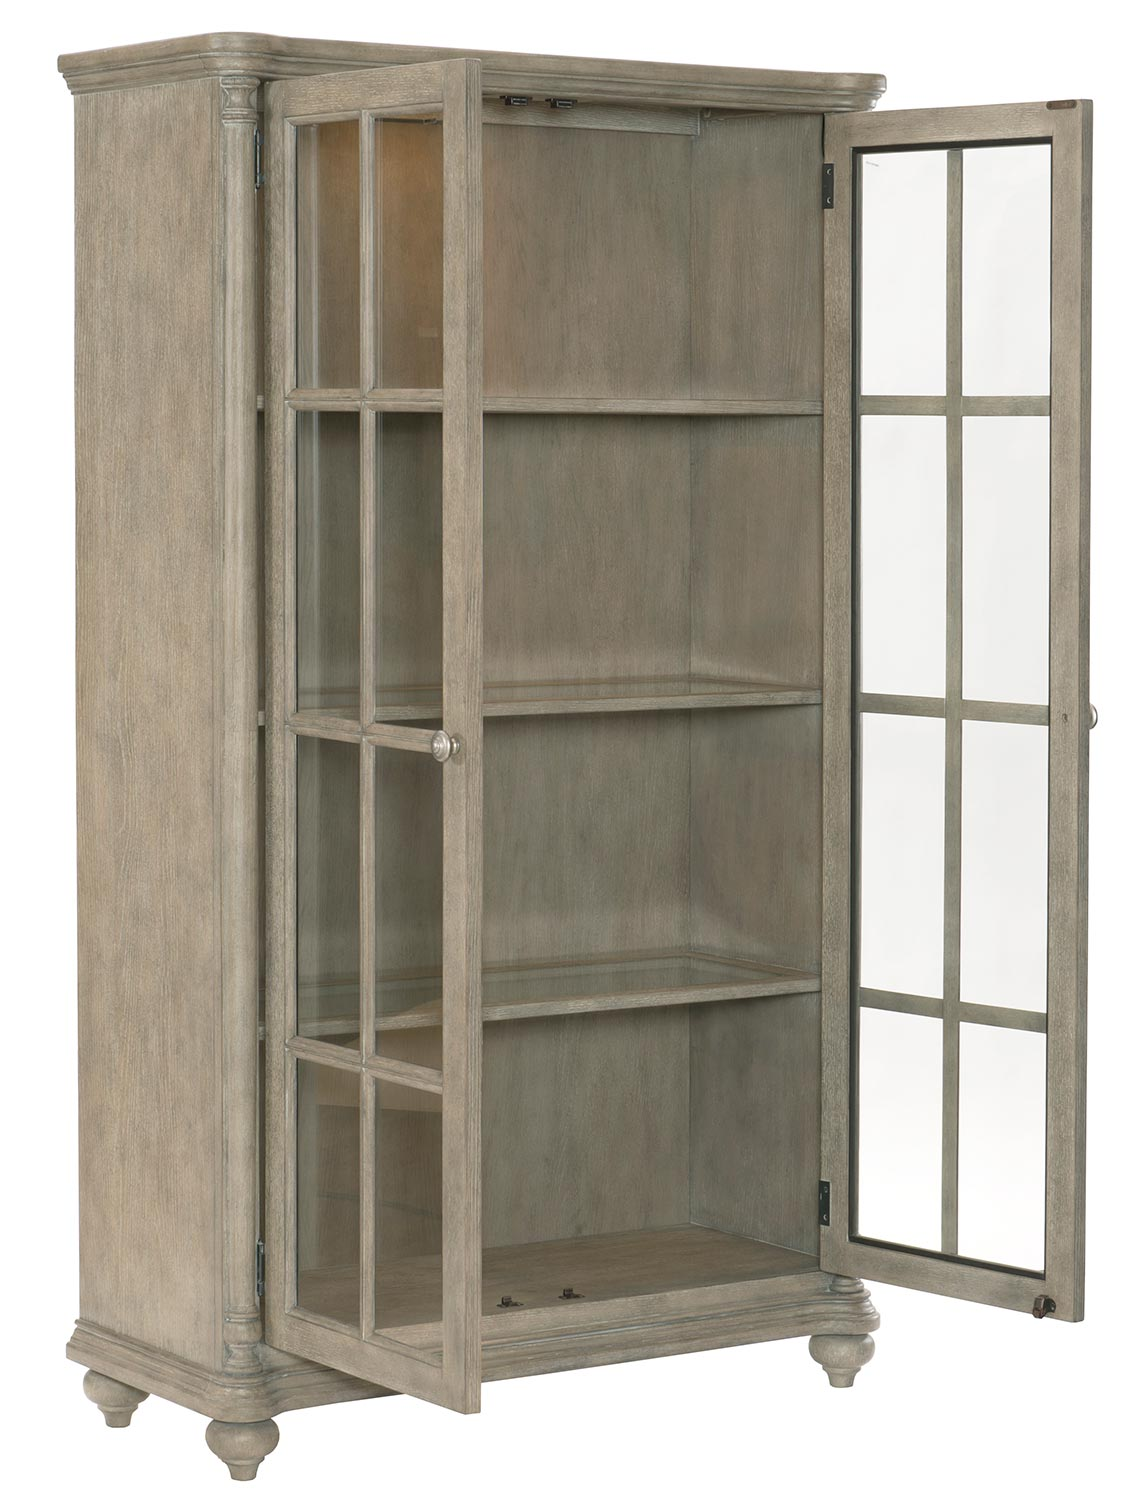 Homelegance Grayling Curio - Driftwood Gray